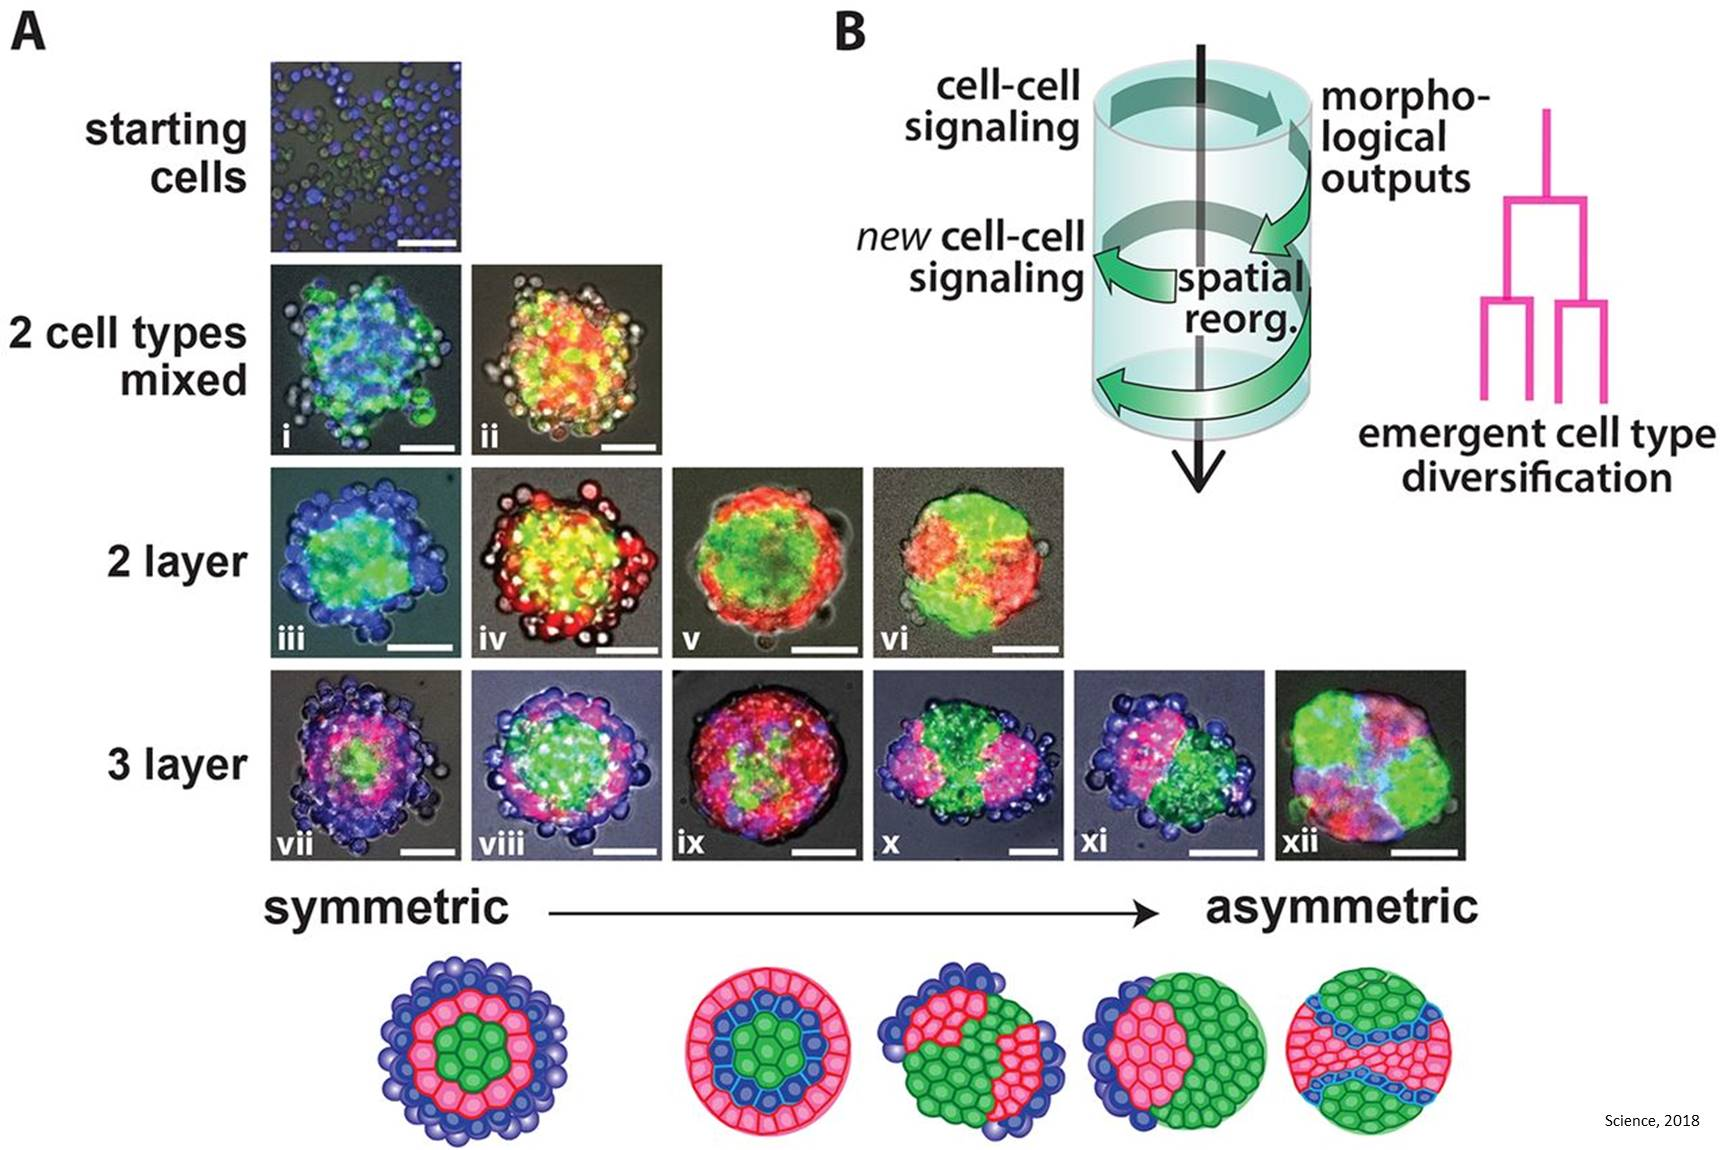 Cells self-organize into layers with synthetic cell-cell signaling